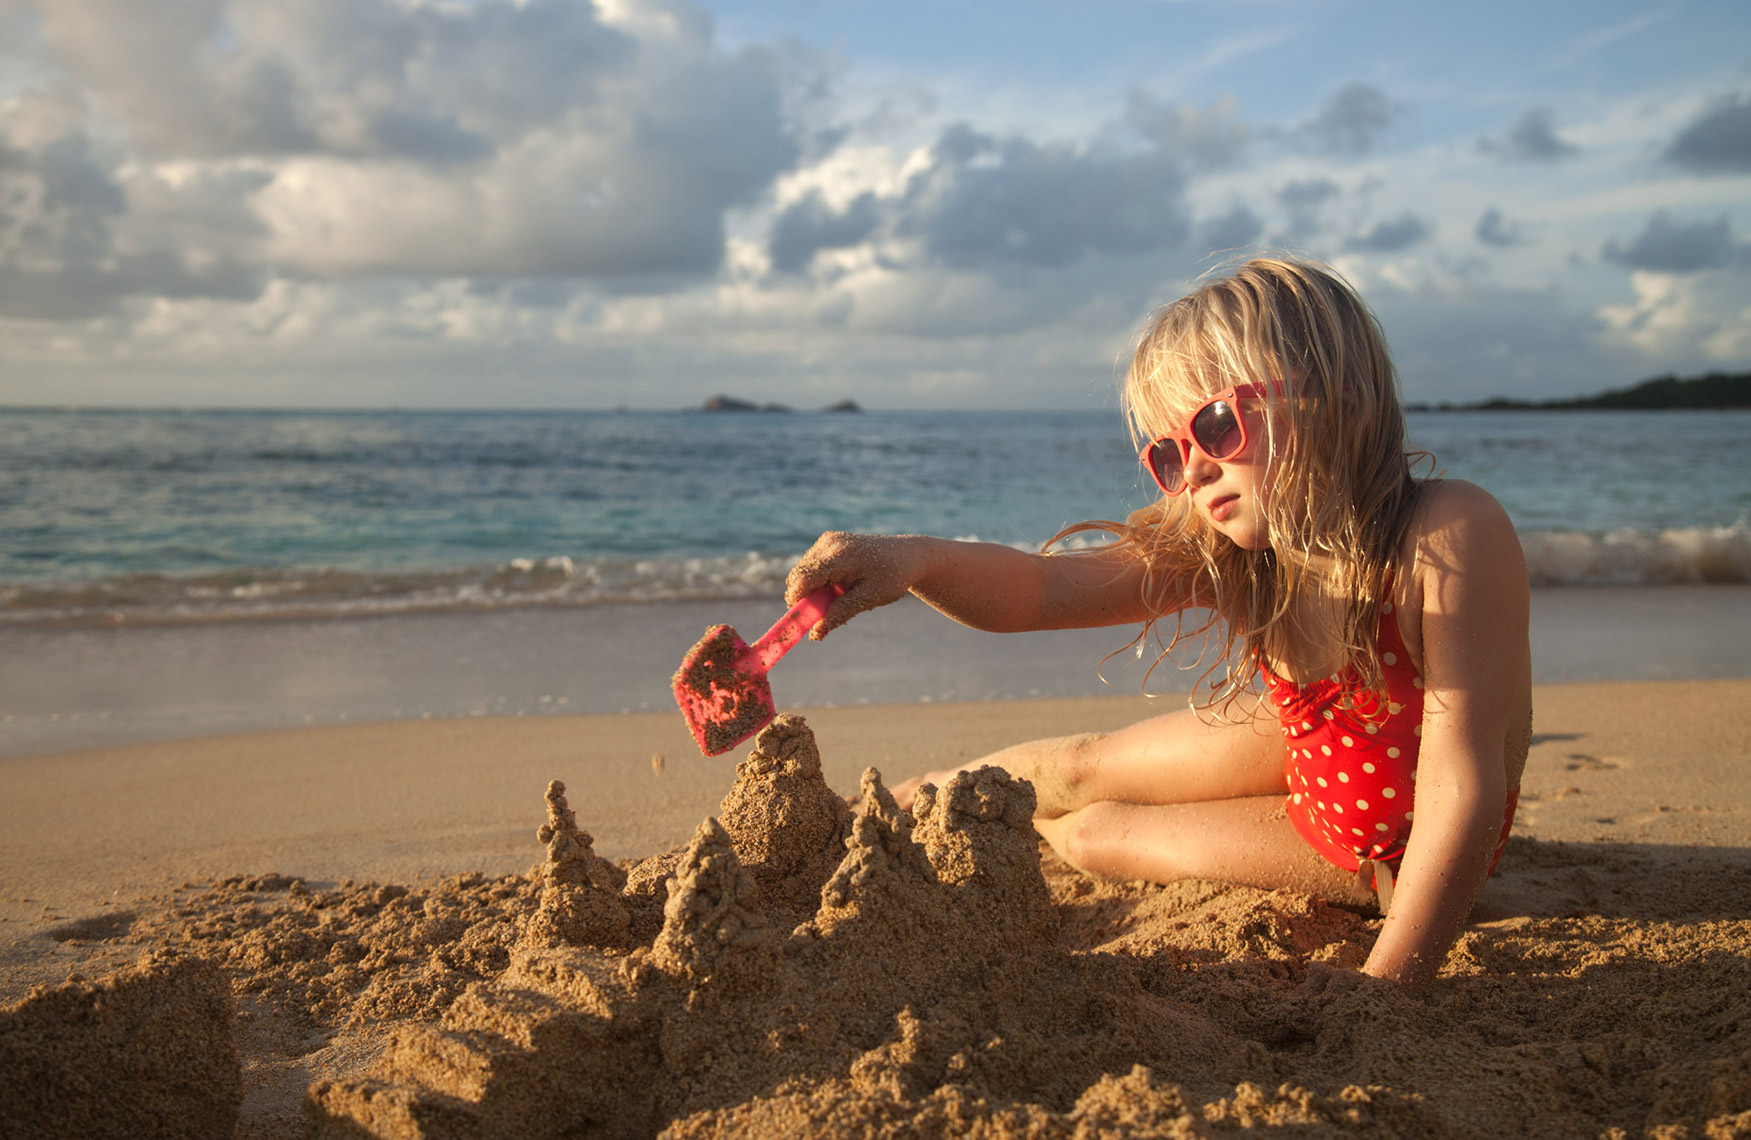 A-YOUNG-GIRL-BUILDING-A-SANDCASTLE-ON-THE-BEACH